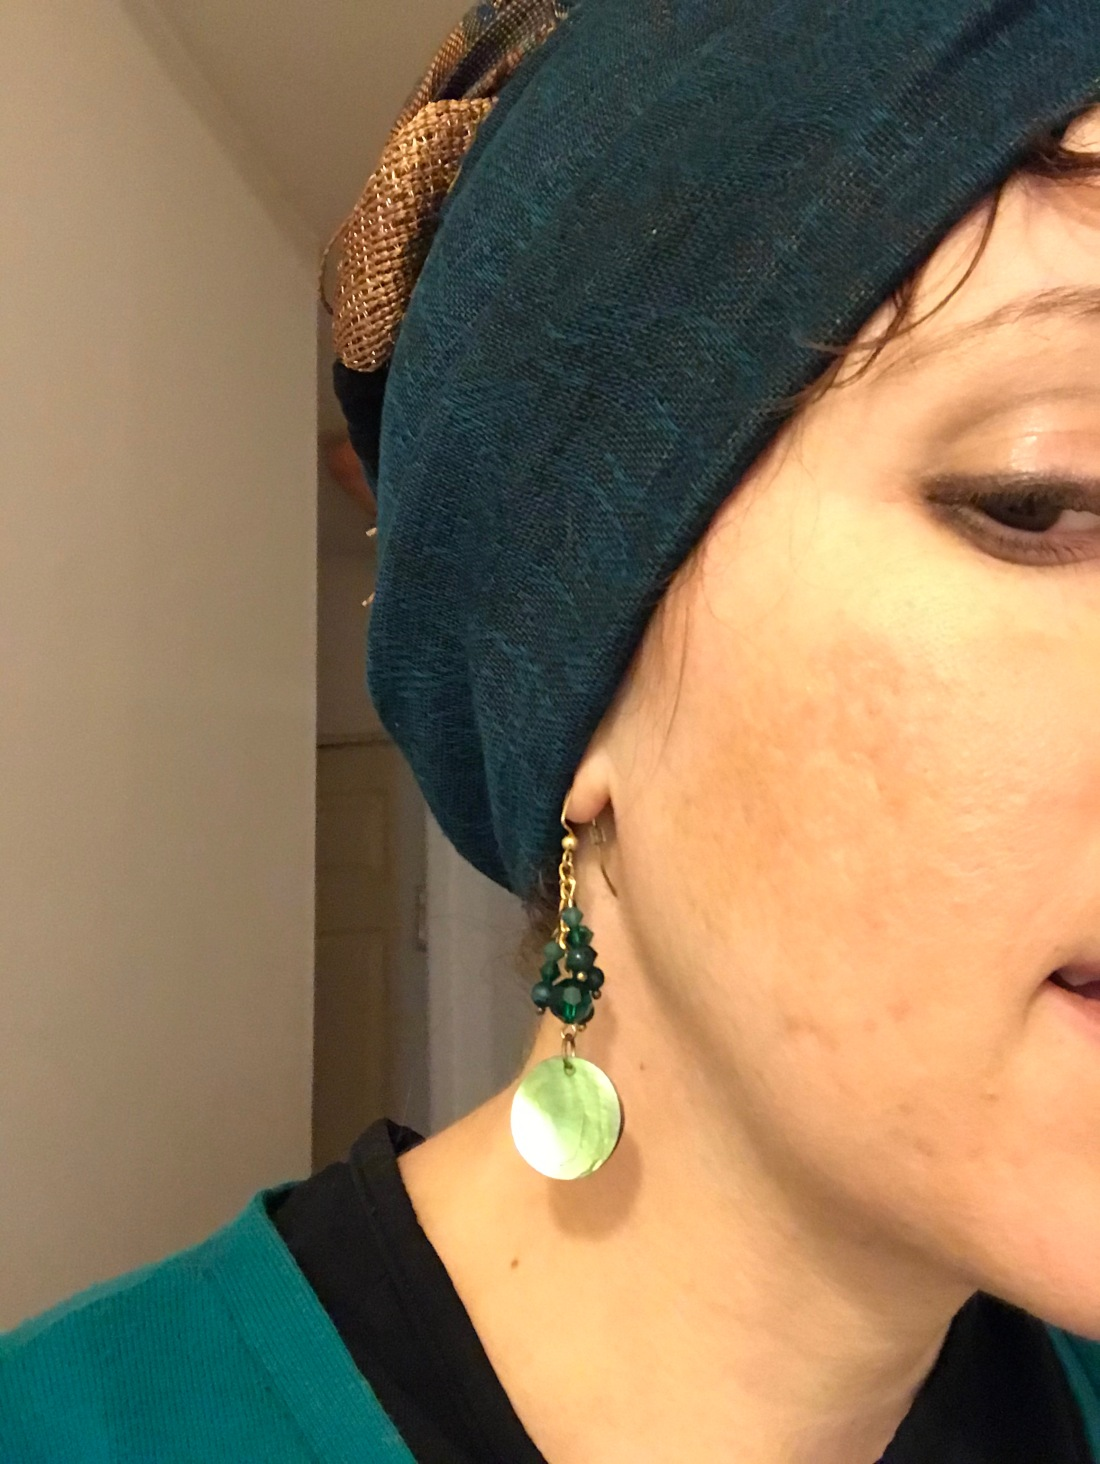 Anatomy- Teal with green earrings